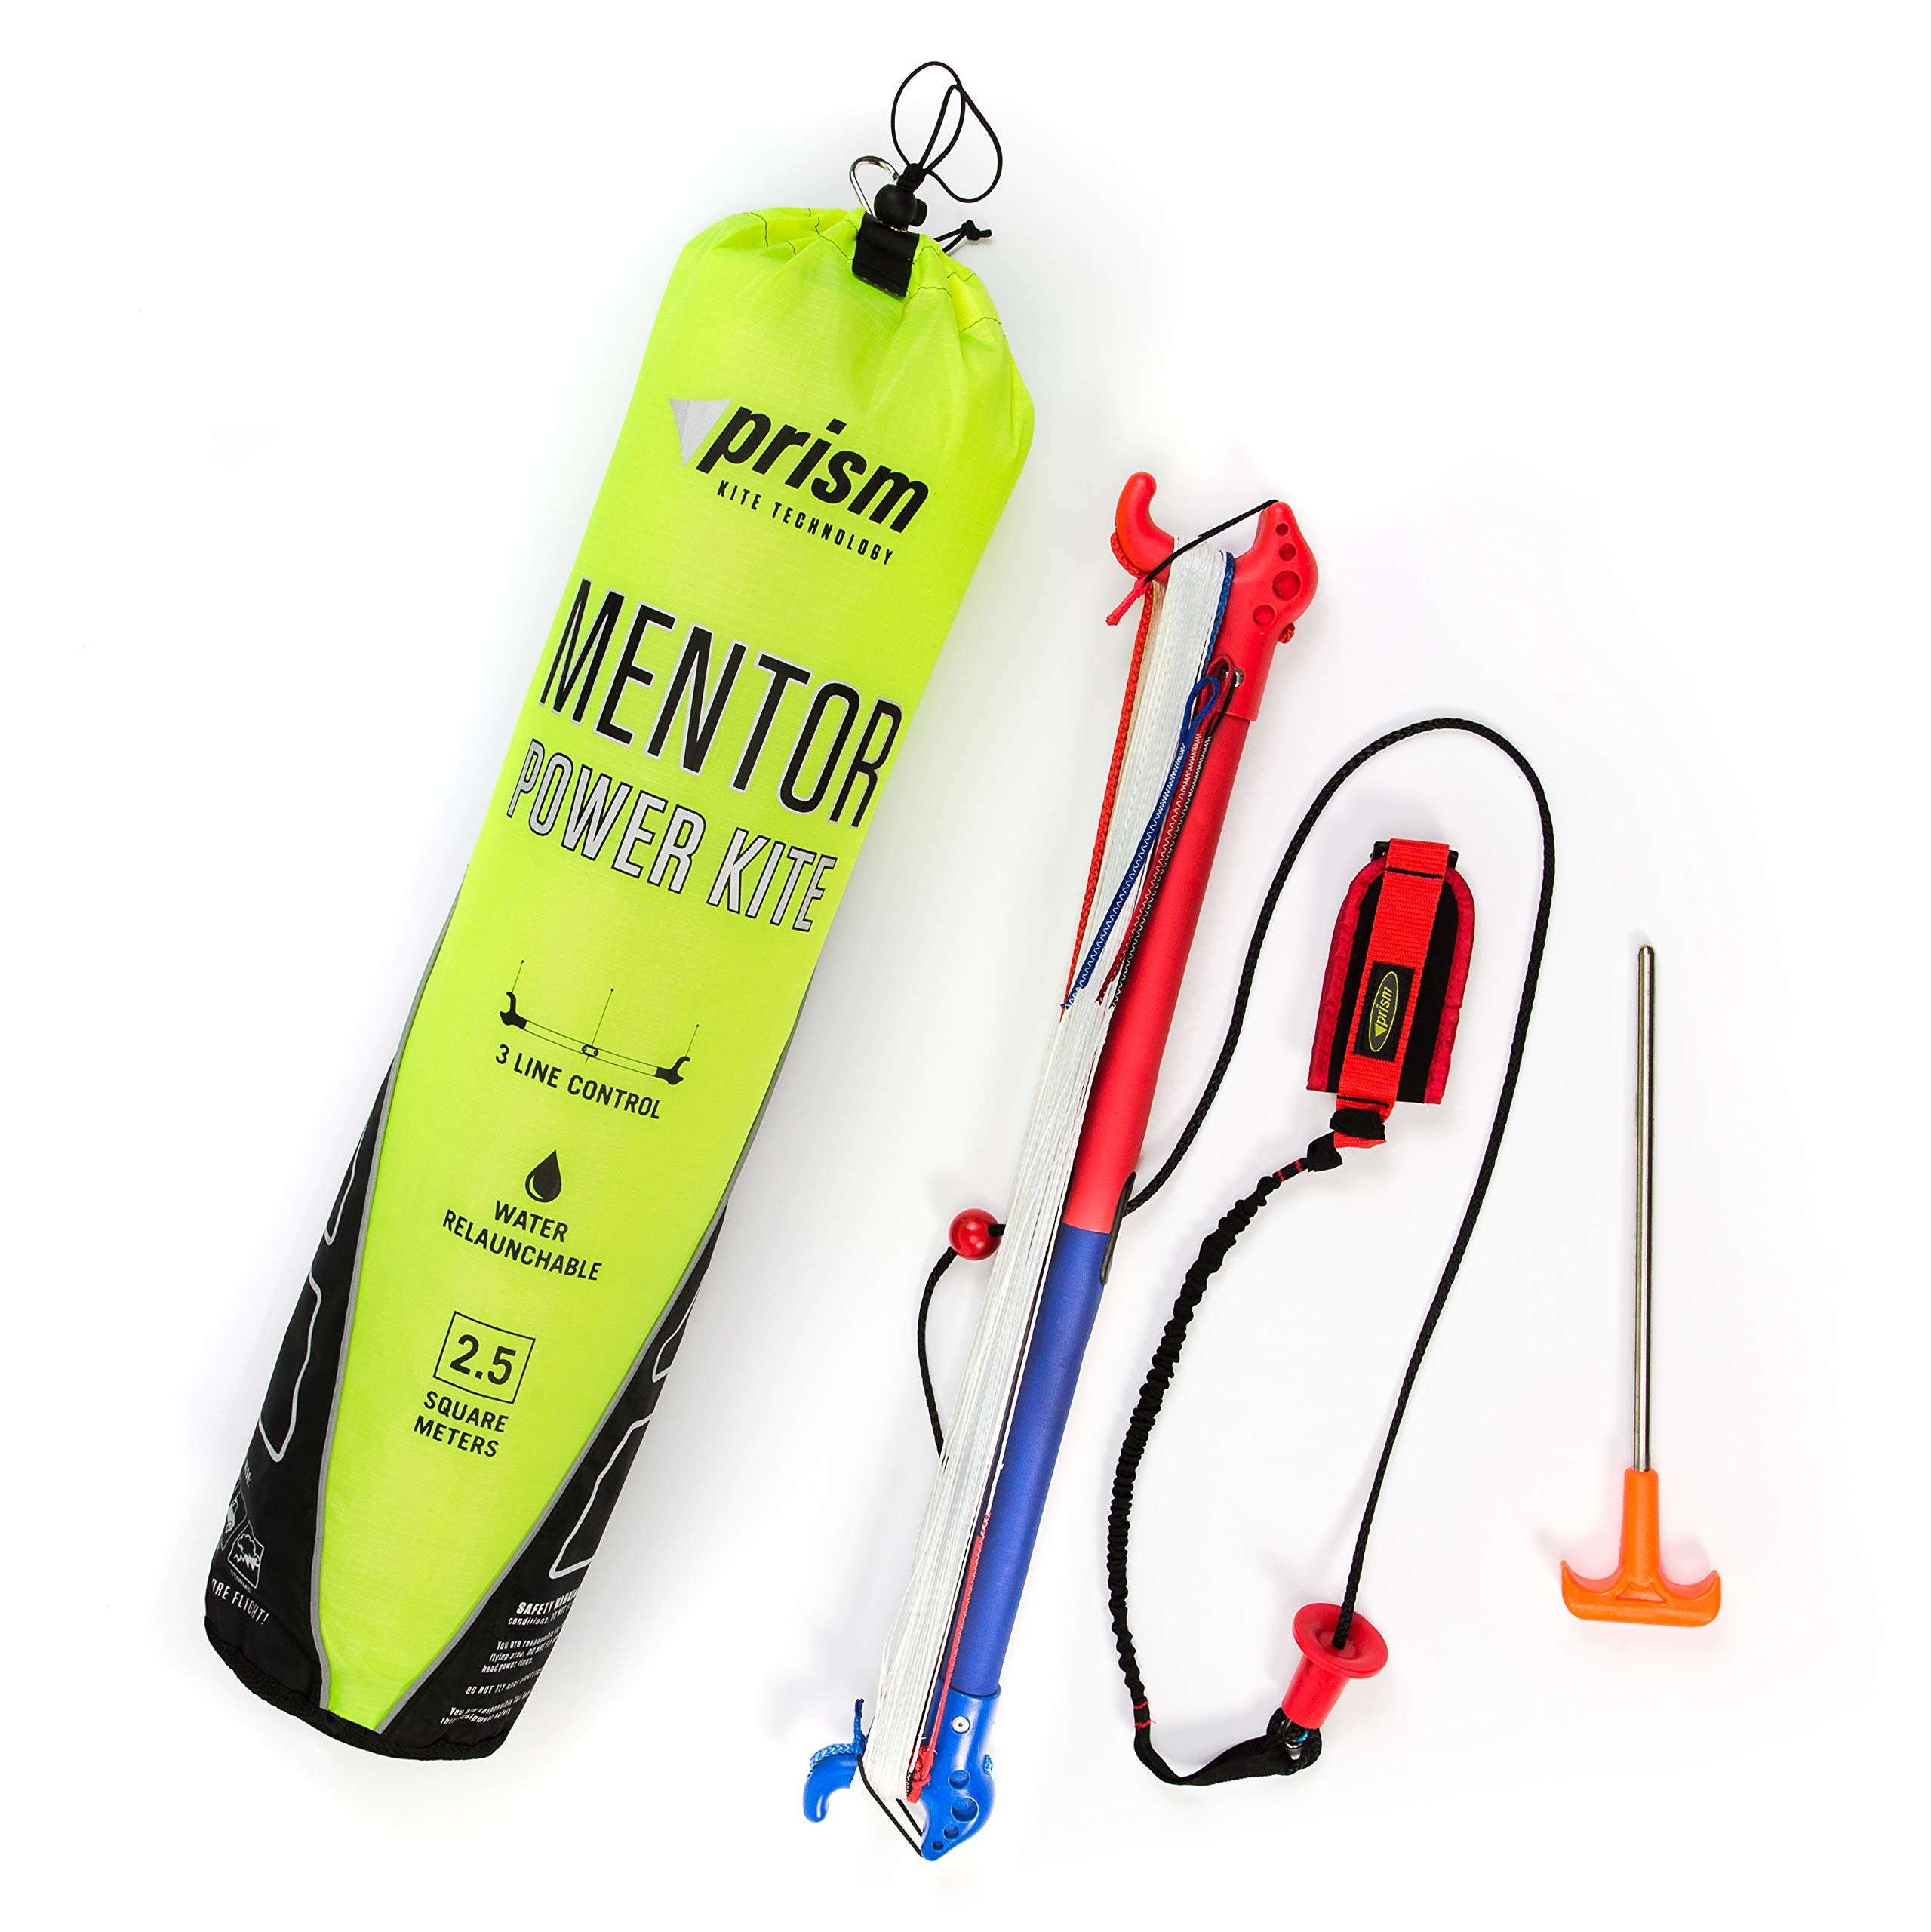 Prism Mentor 2.5m Water-relaunchable Three-line Power Kite Ready to Fly with Control bar, Ground Stake and Quick Release Safety Leash by Prism Kite Technology (Image #2)